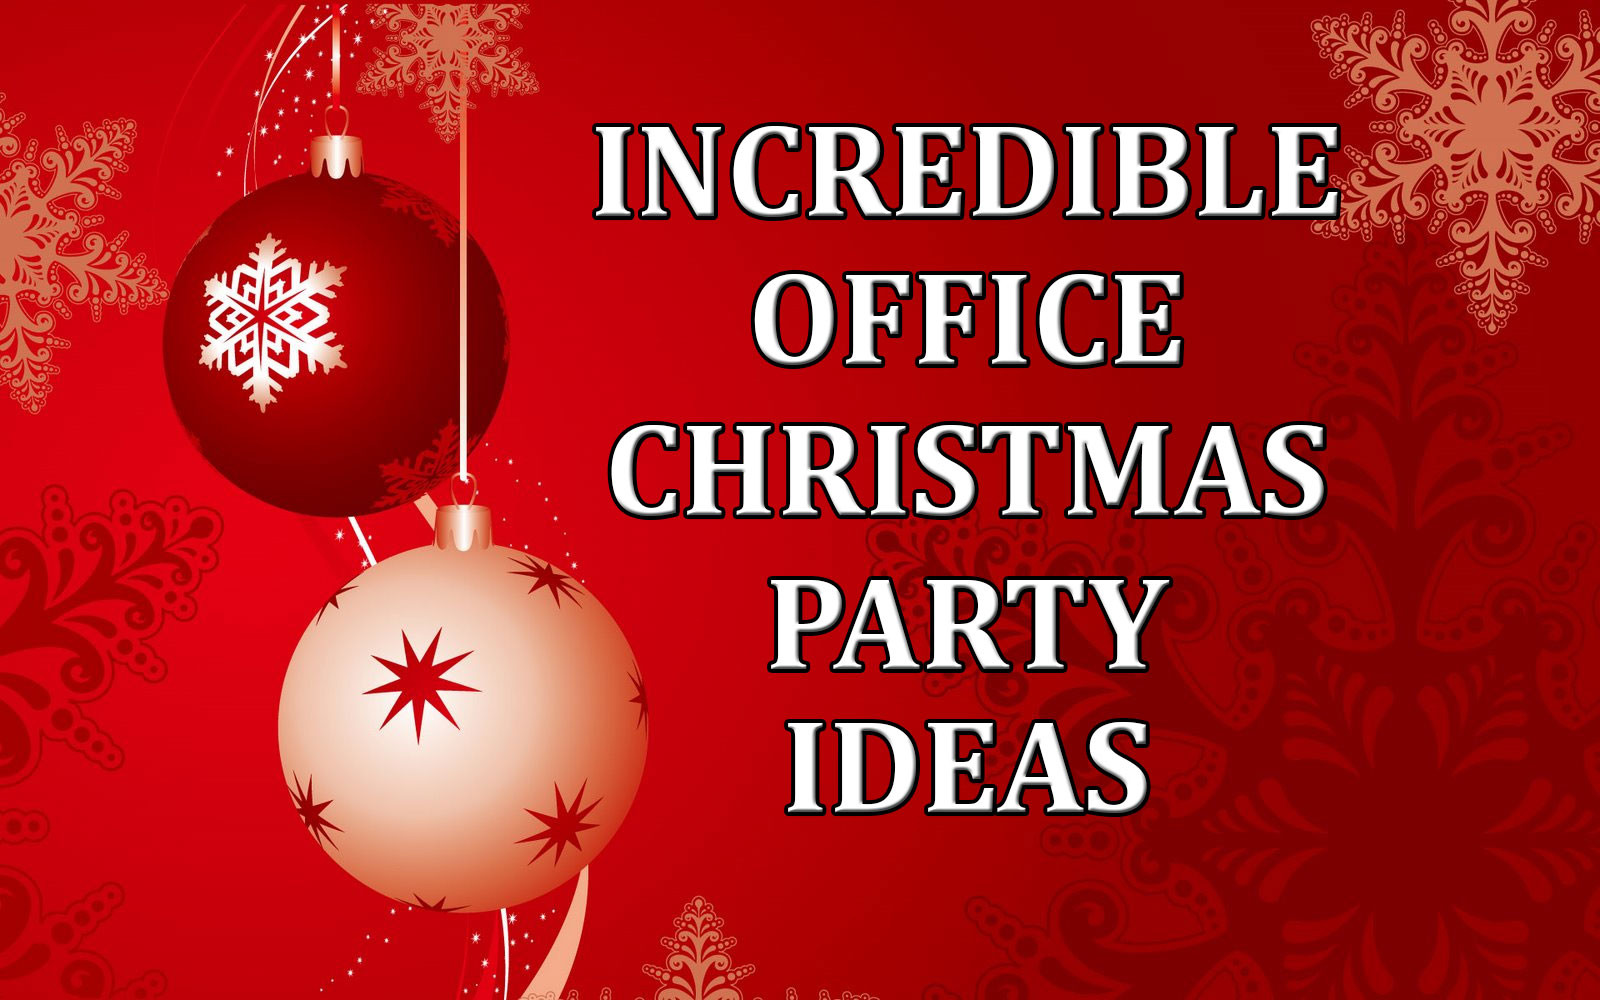 Staff Christmas Party Ideas  Incredible fice Christmas Party Ideas edy Ventriloquist